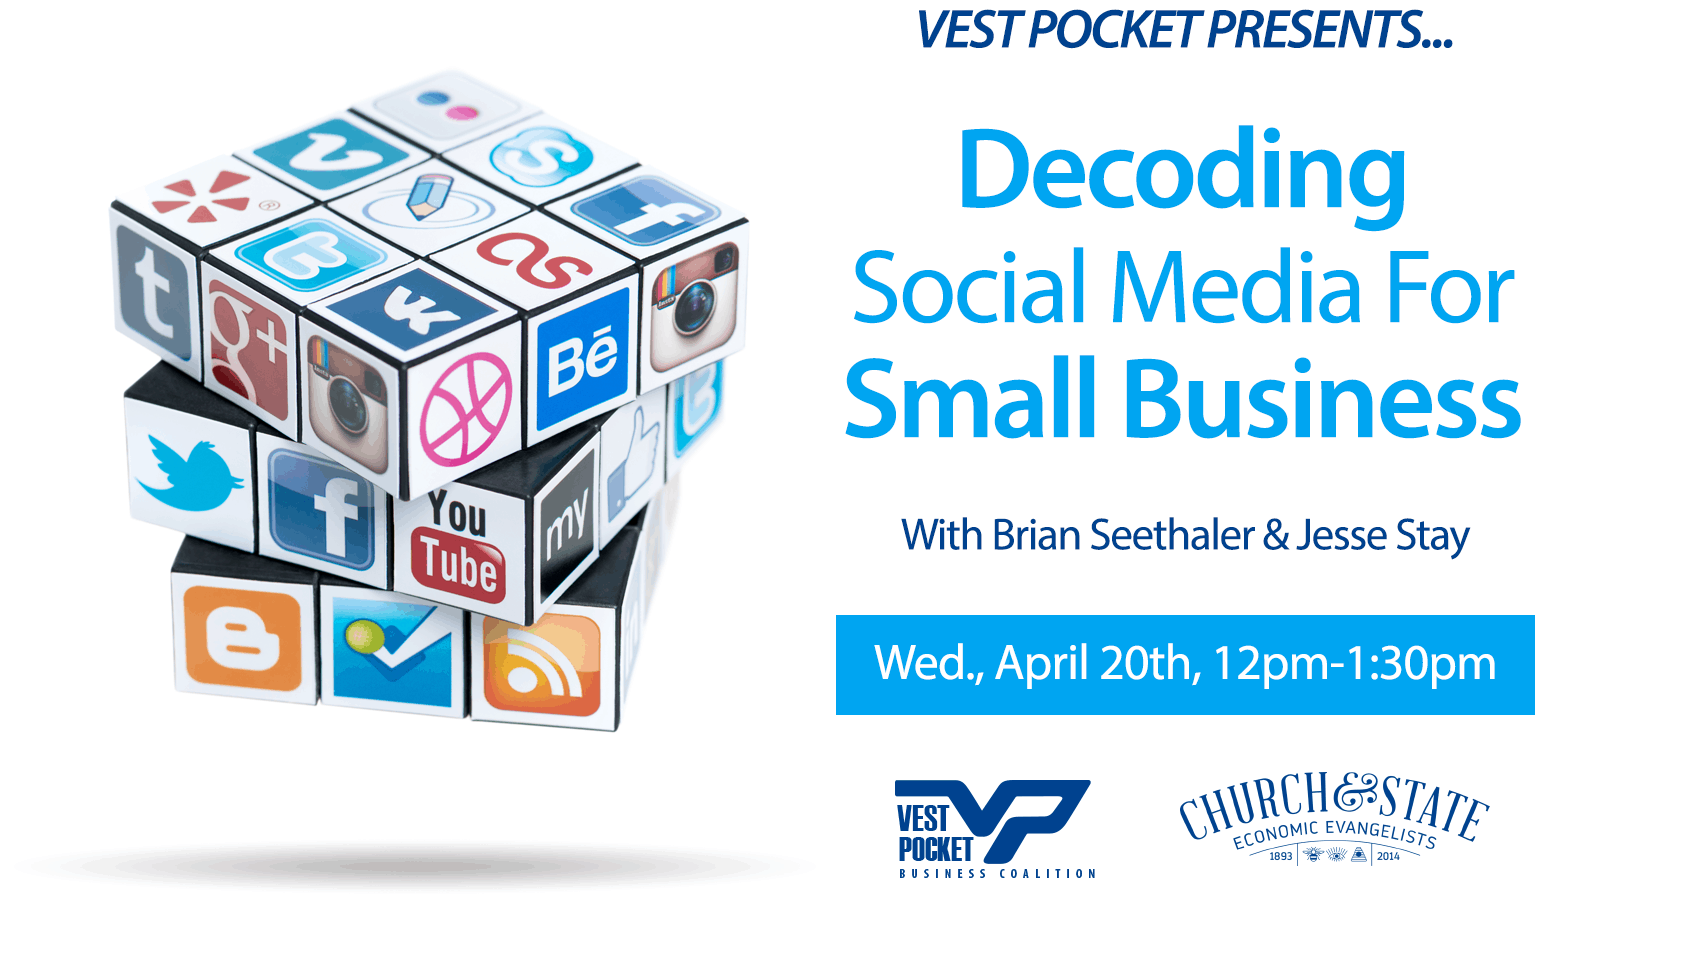 Decoding Social Media For Small Business